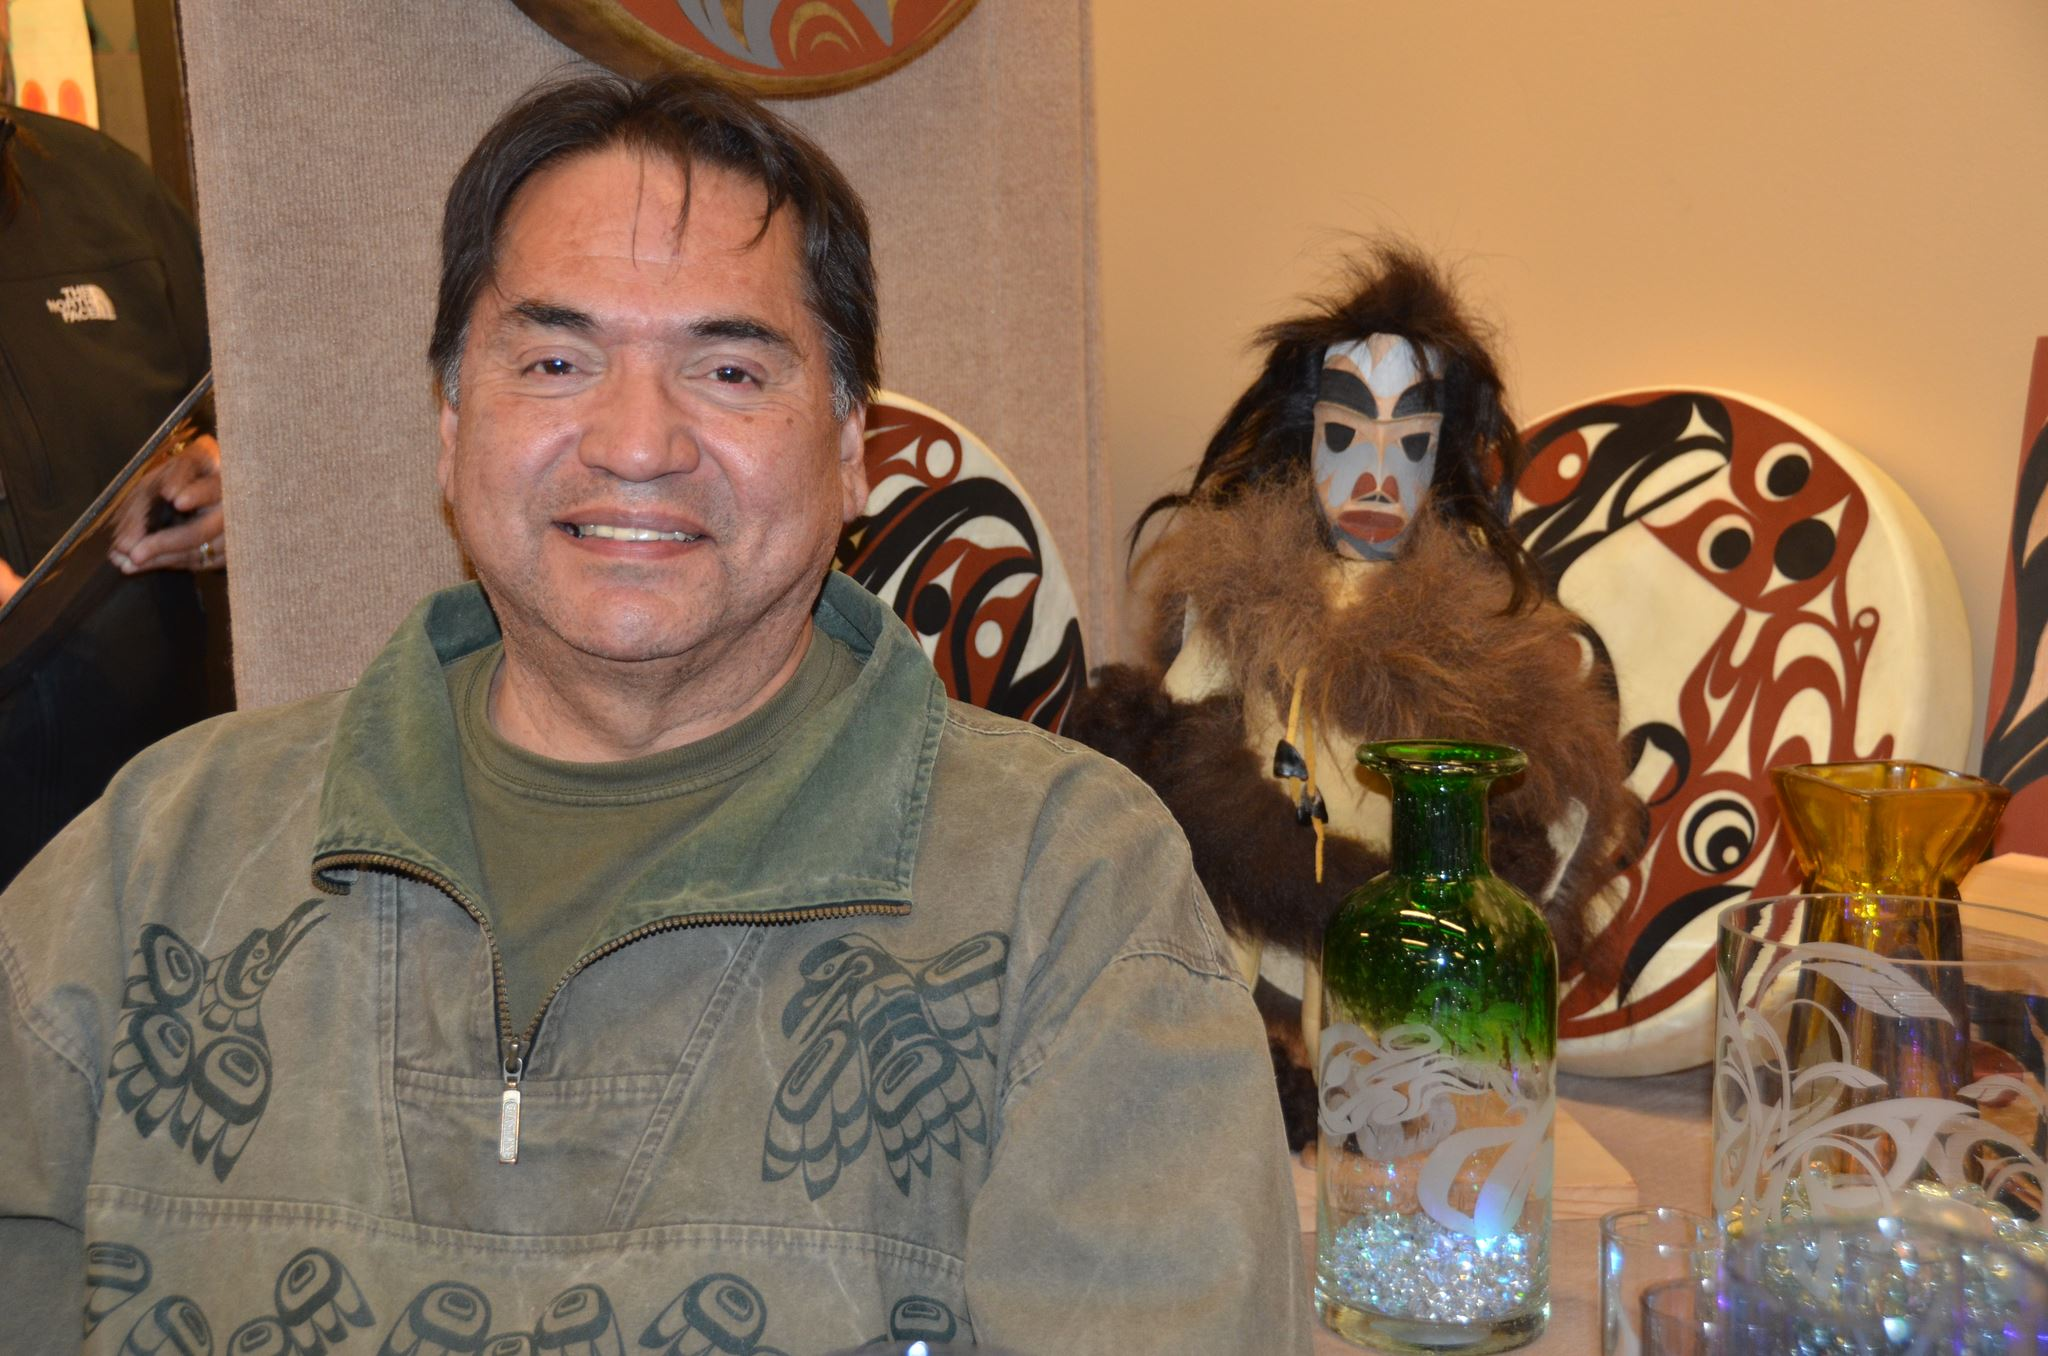 native american crafts for holidays seattle n art martunited art 981027 10151811739542478 1227380223 o 1491312 10151810580497478 369625594 o 1497937 10151812371862478 1480439817 o